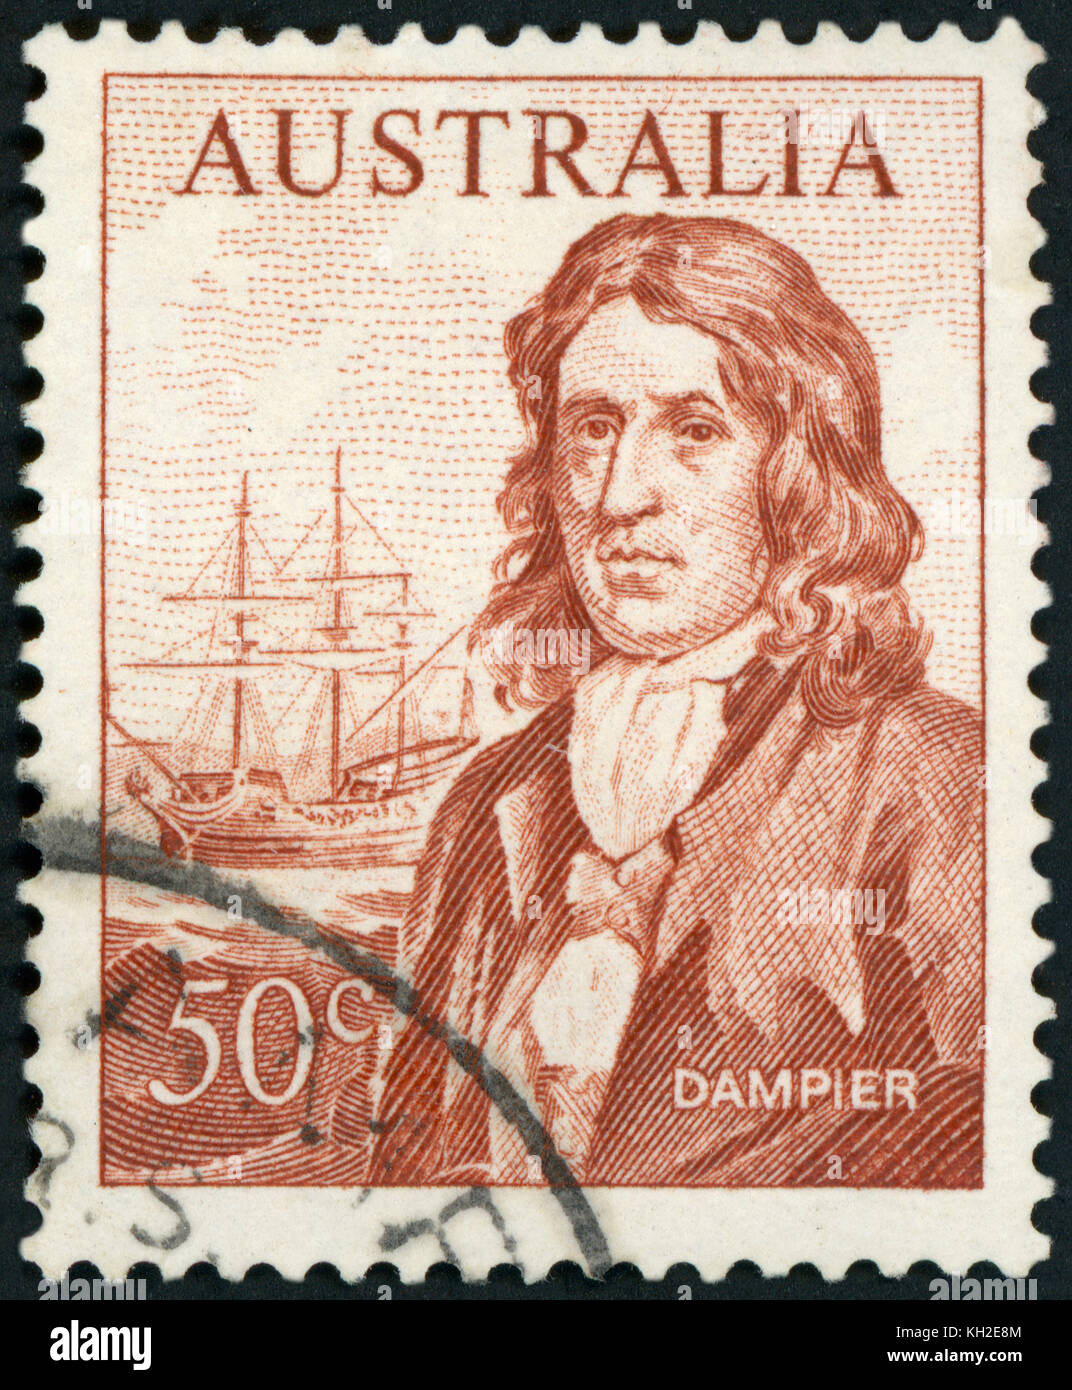 AUSTRALIA - CIRCA 1966: A used postage stamp from Australia, depicting an illustration of Explorer William Dampier, - Stock Image